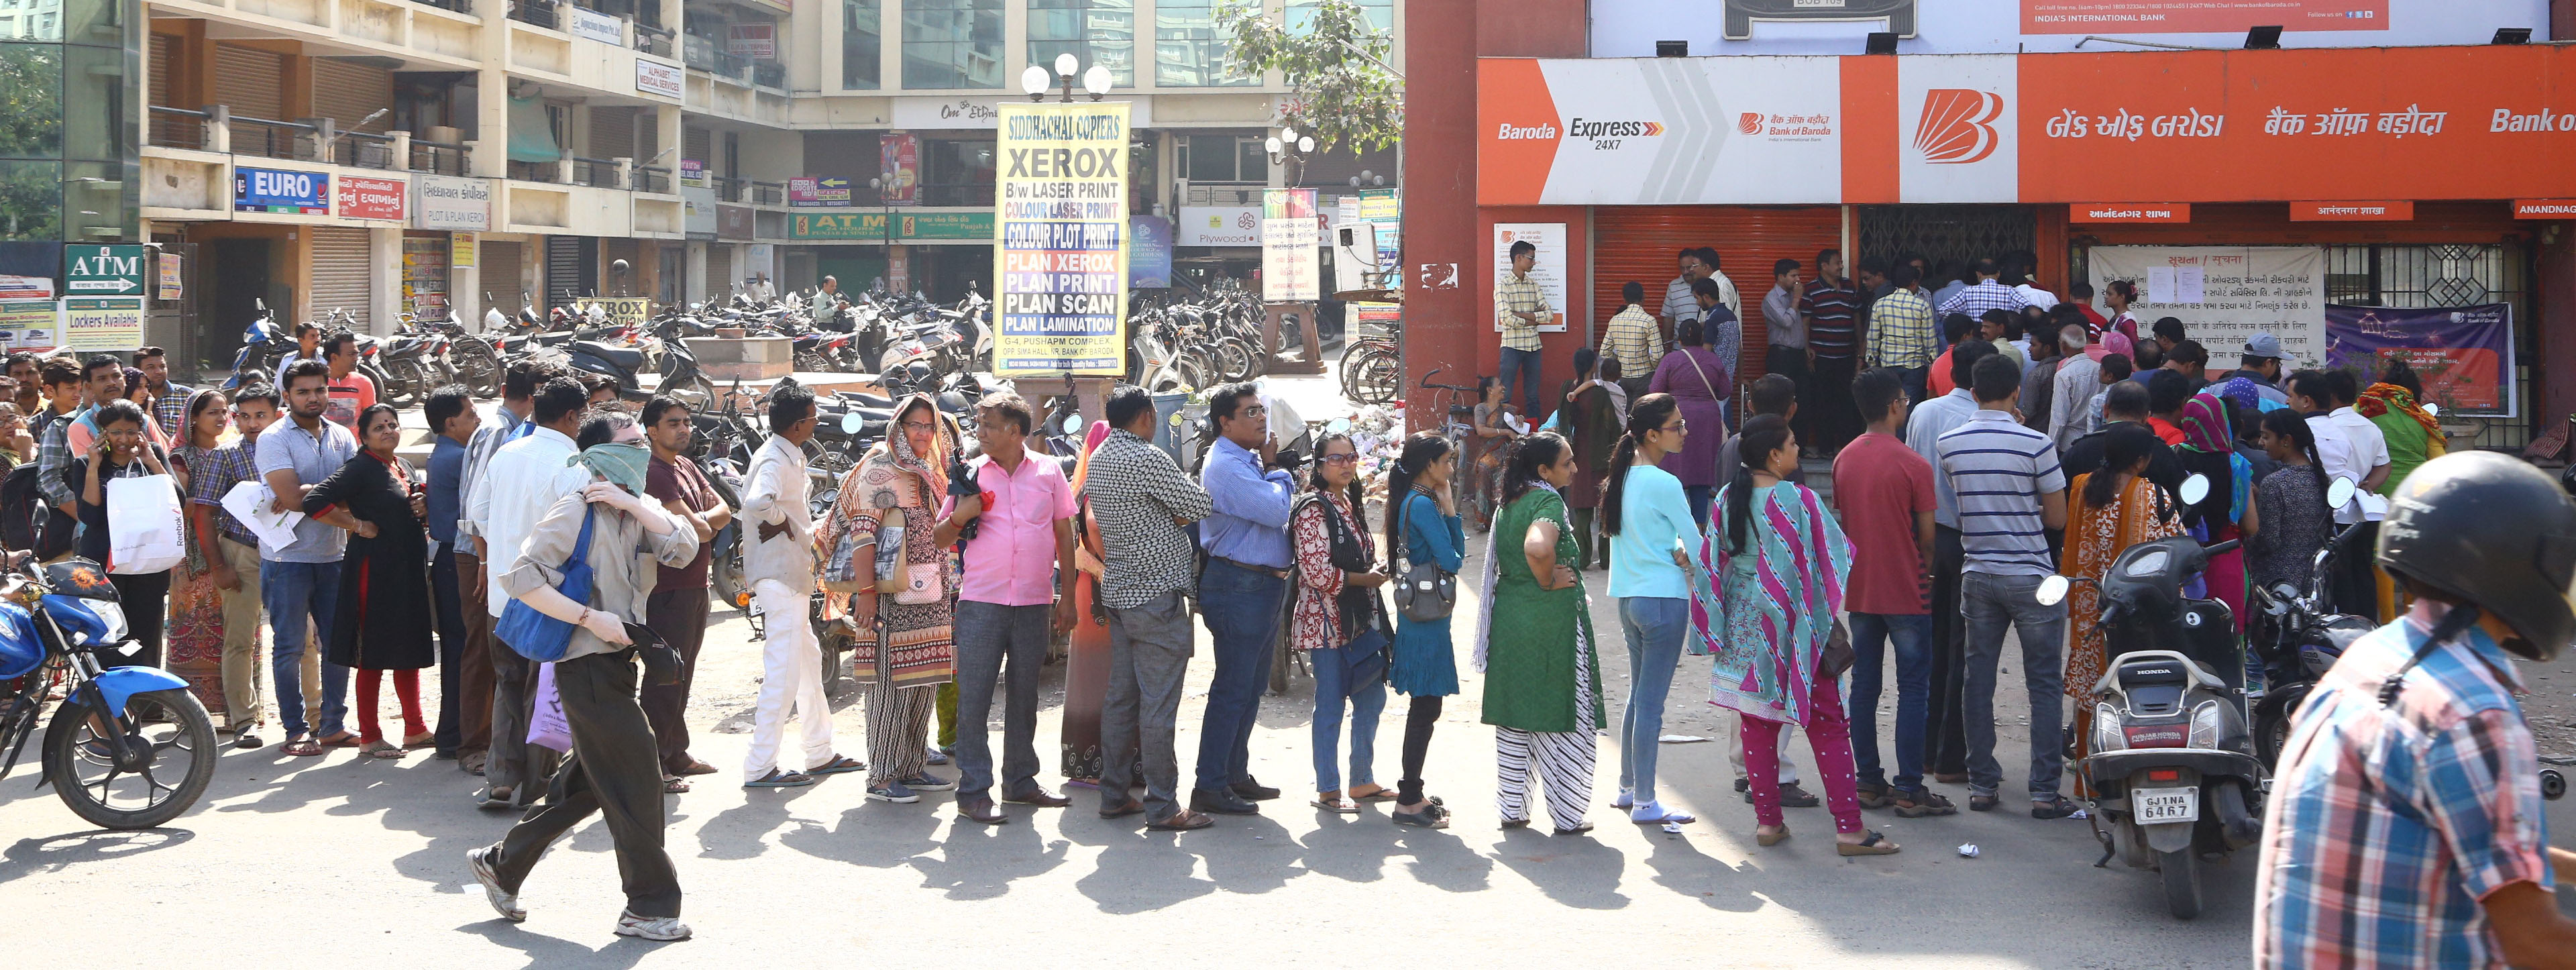 Large queue continue to adorn outside the RBI to exchange money a week after the demonetisation was announced in the capital New Delhi on Thursday. Express Photo by Amit Mehra.